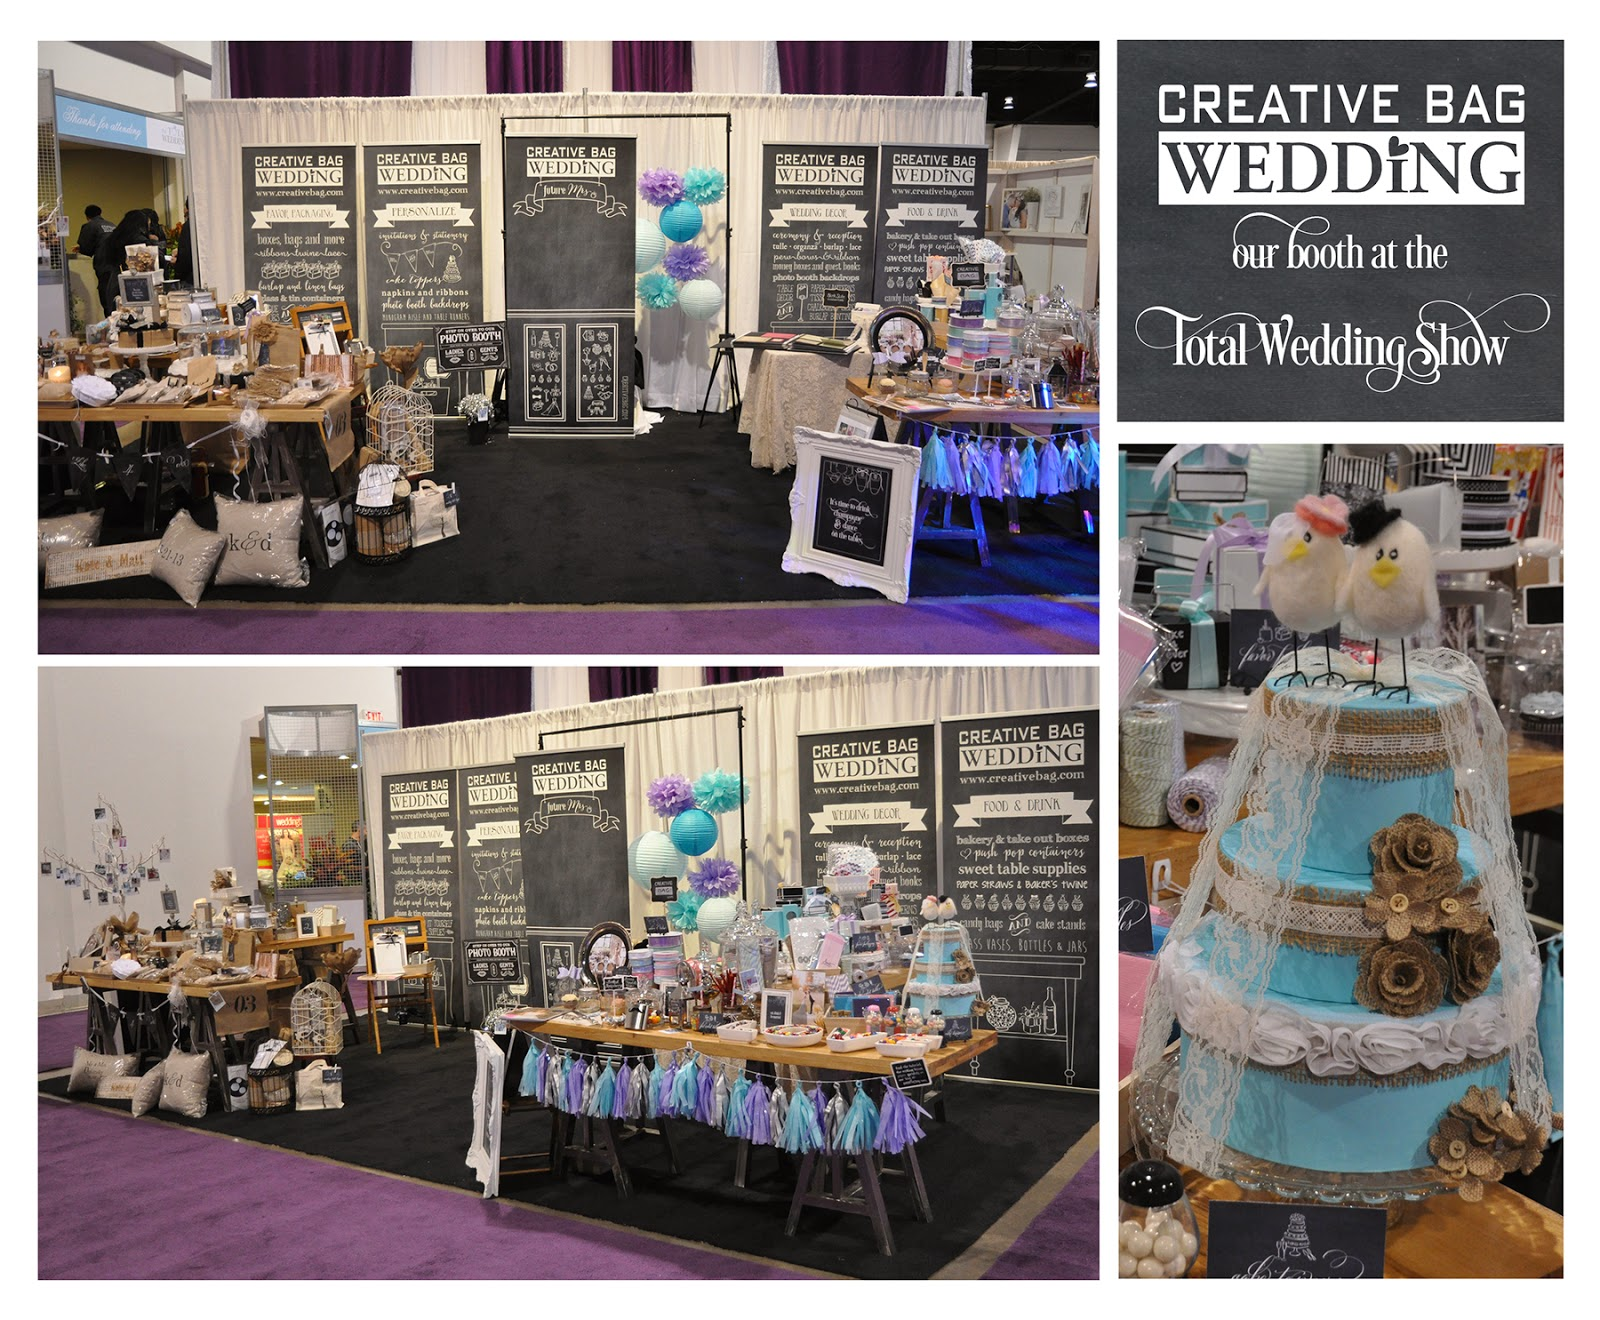 Creative Bag Wedding booth at the Total Wedding Show 2014